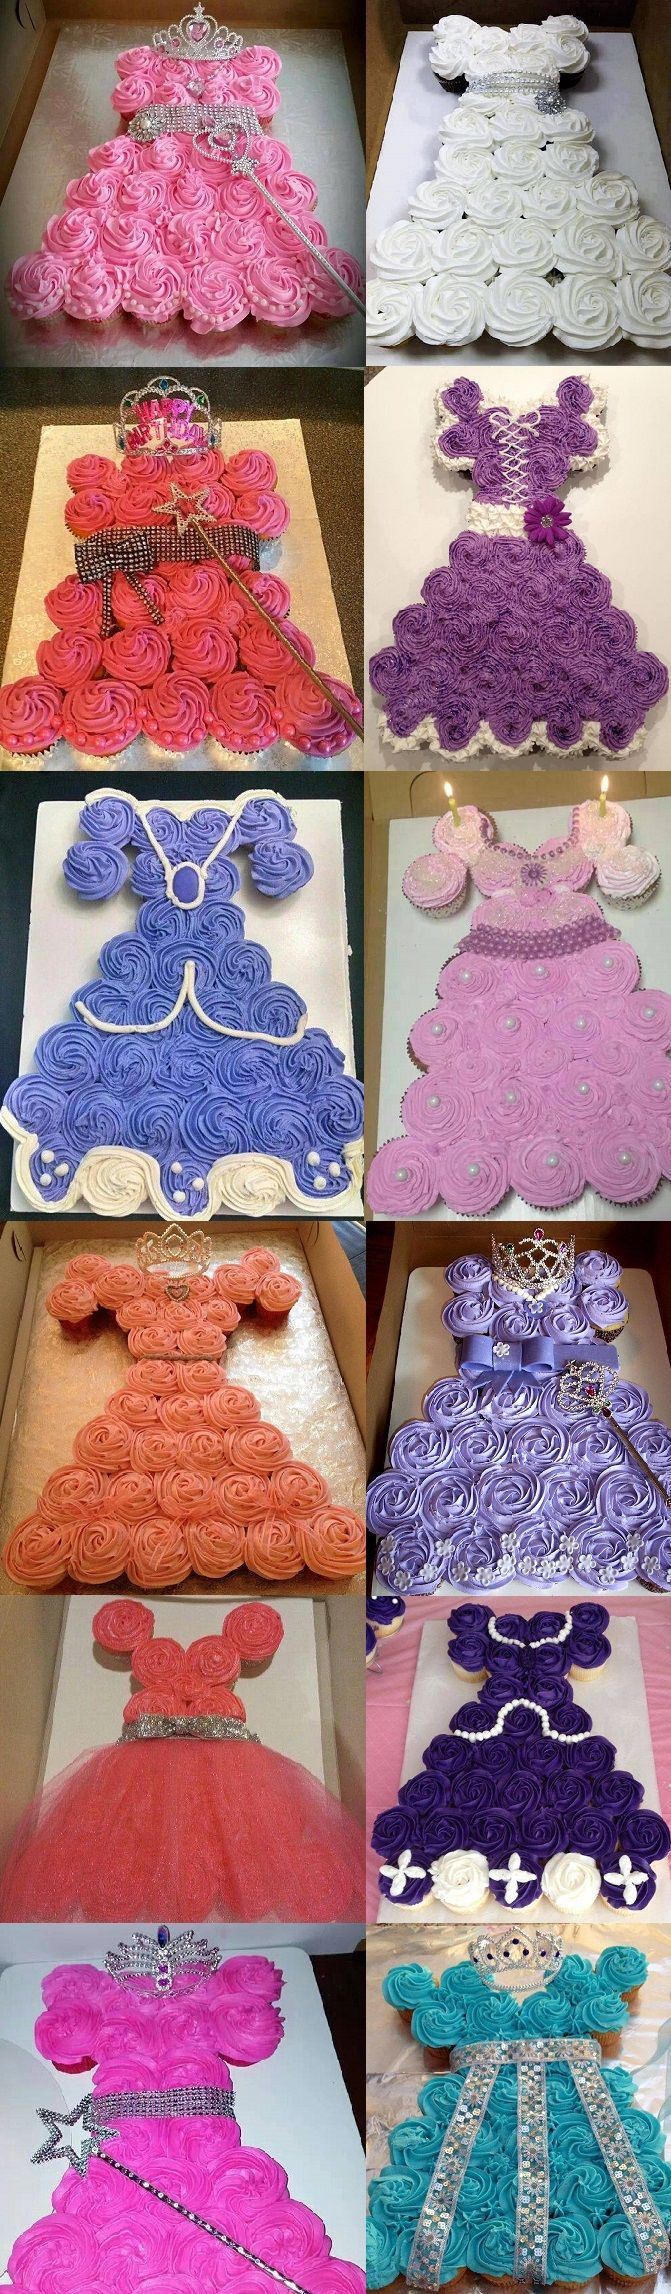 Princess Dresses Cupcakes